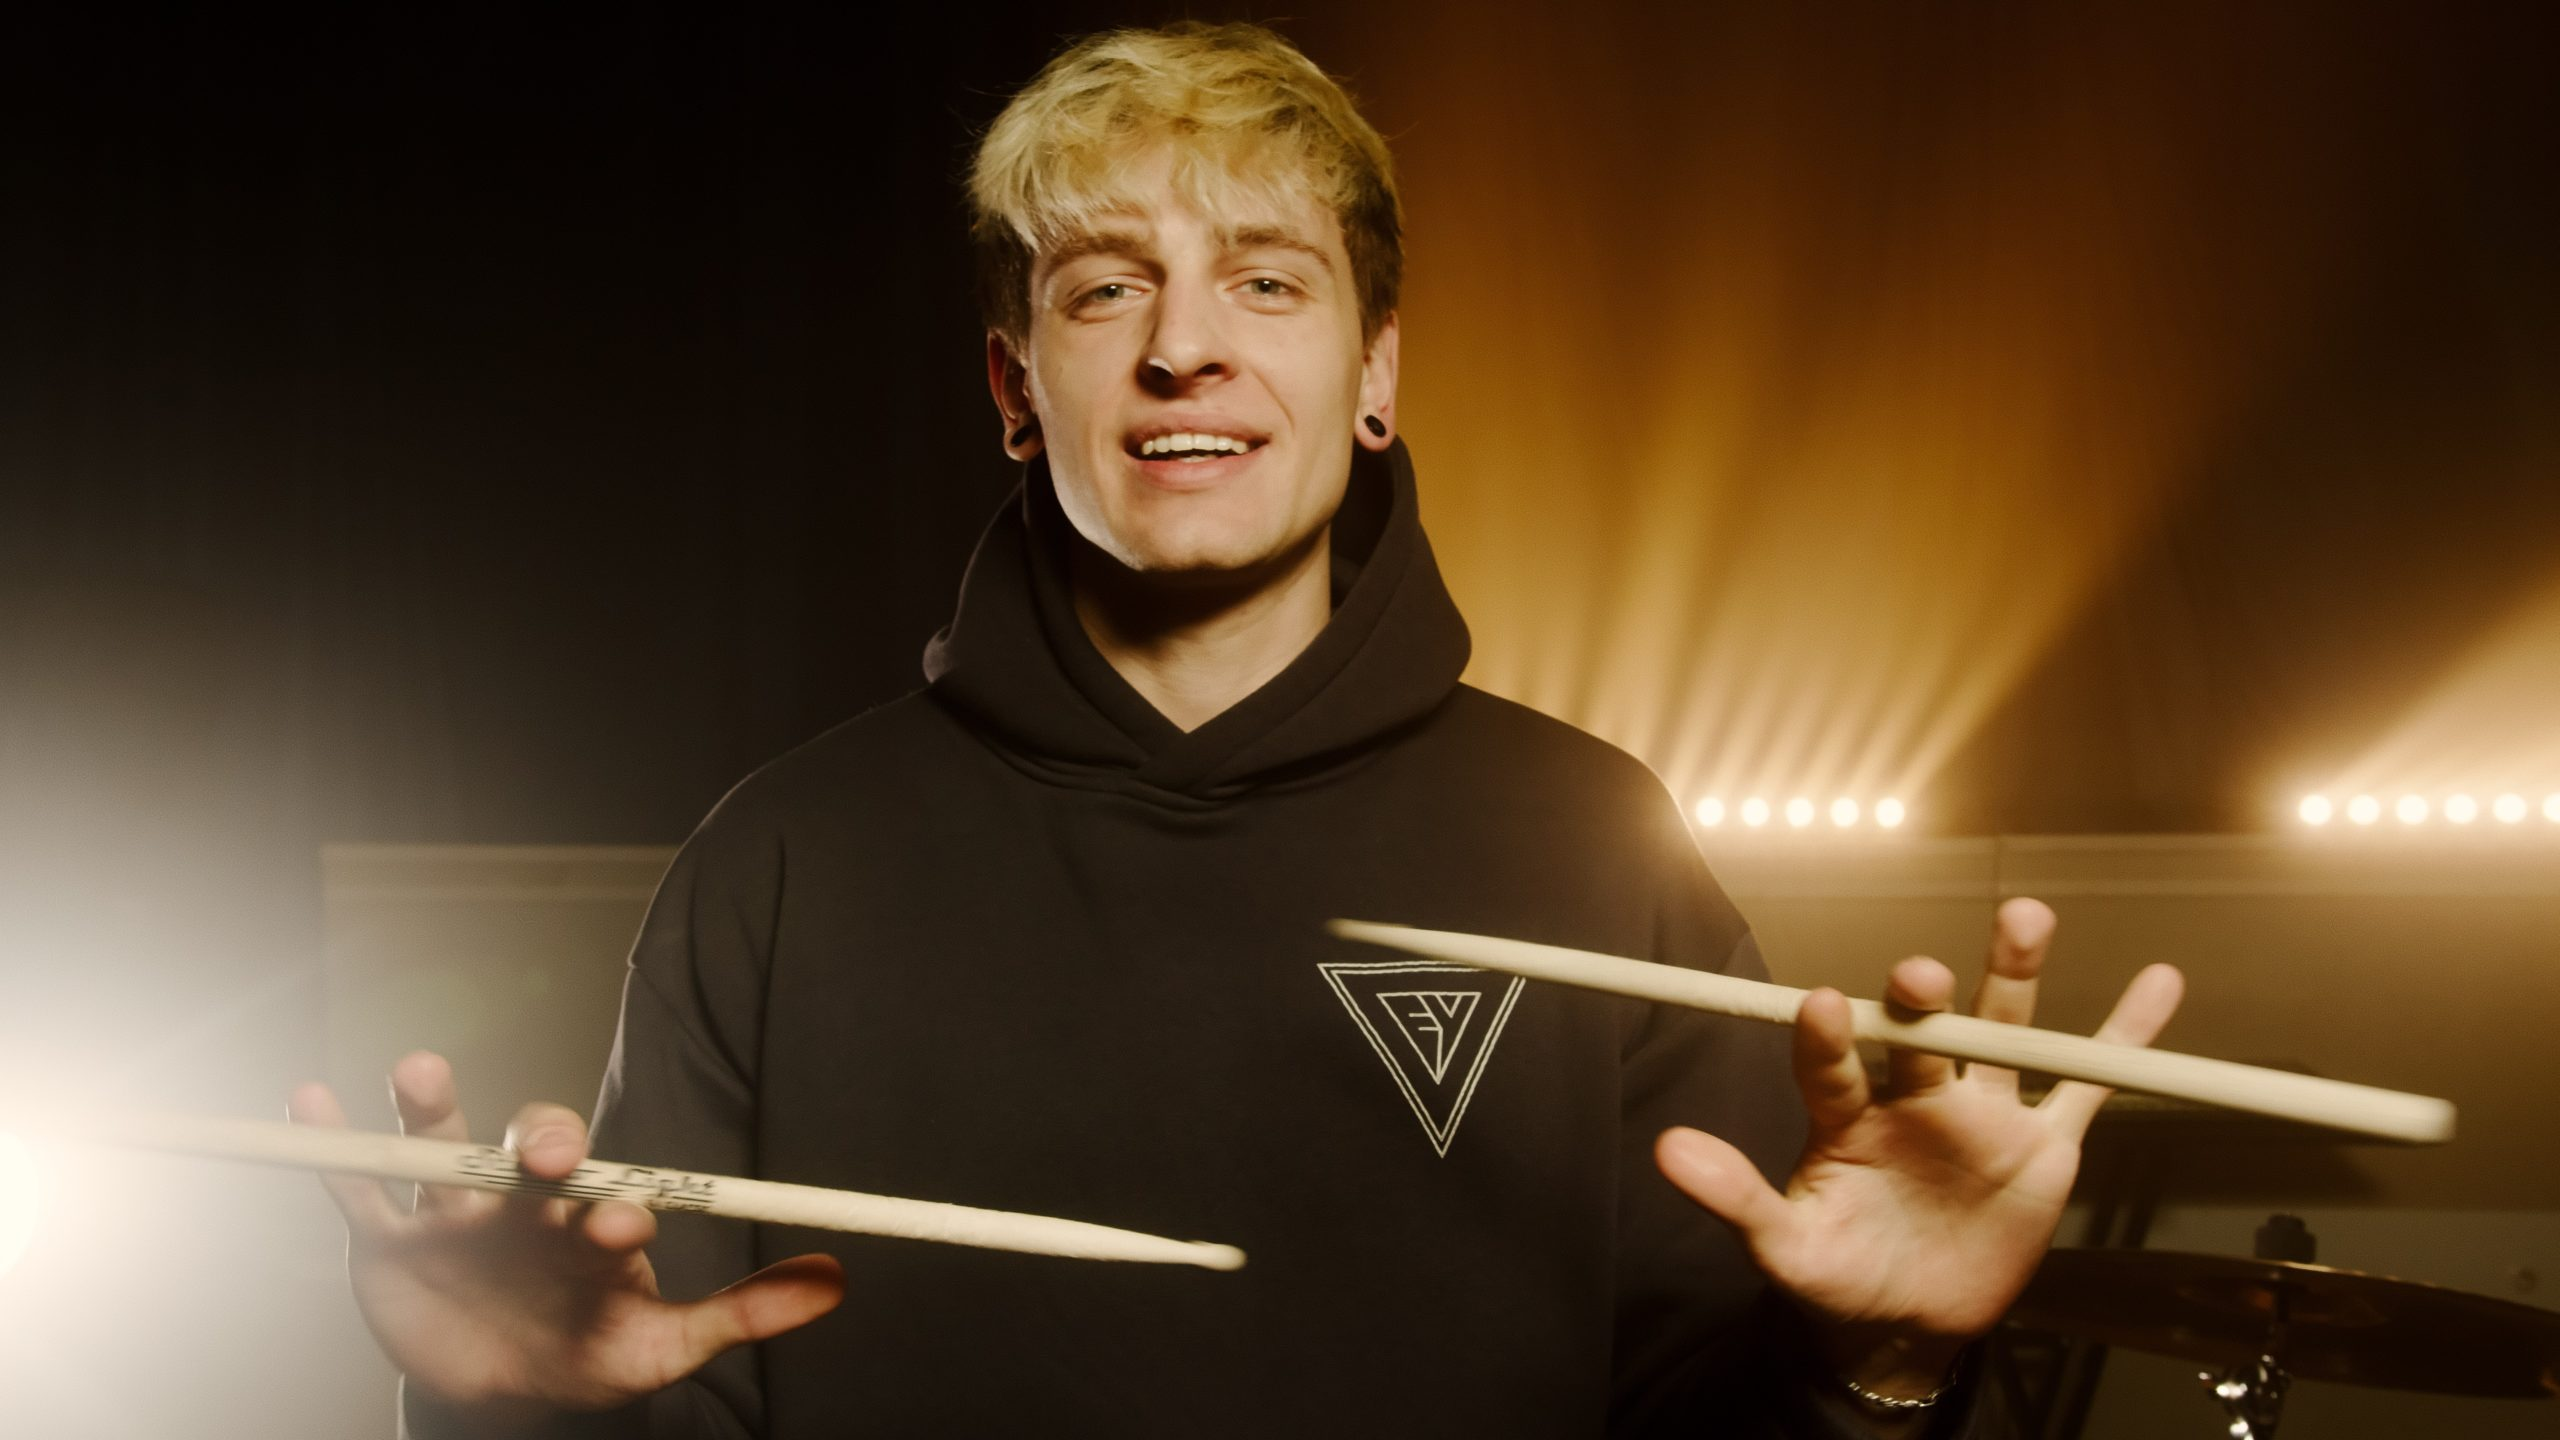 Happy Drummer spinning his sticks in his fingers. To demonstrate how drums improves mental health